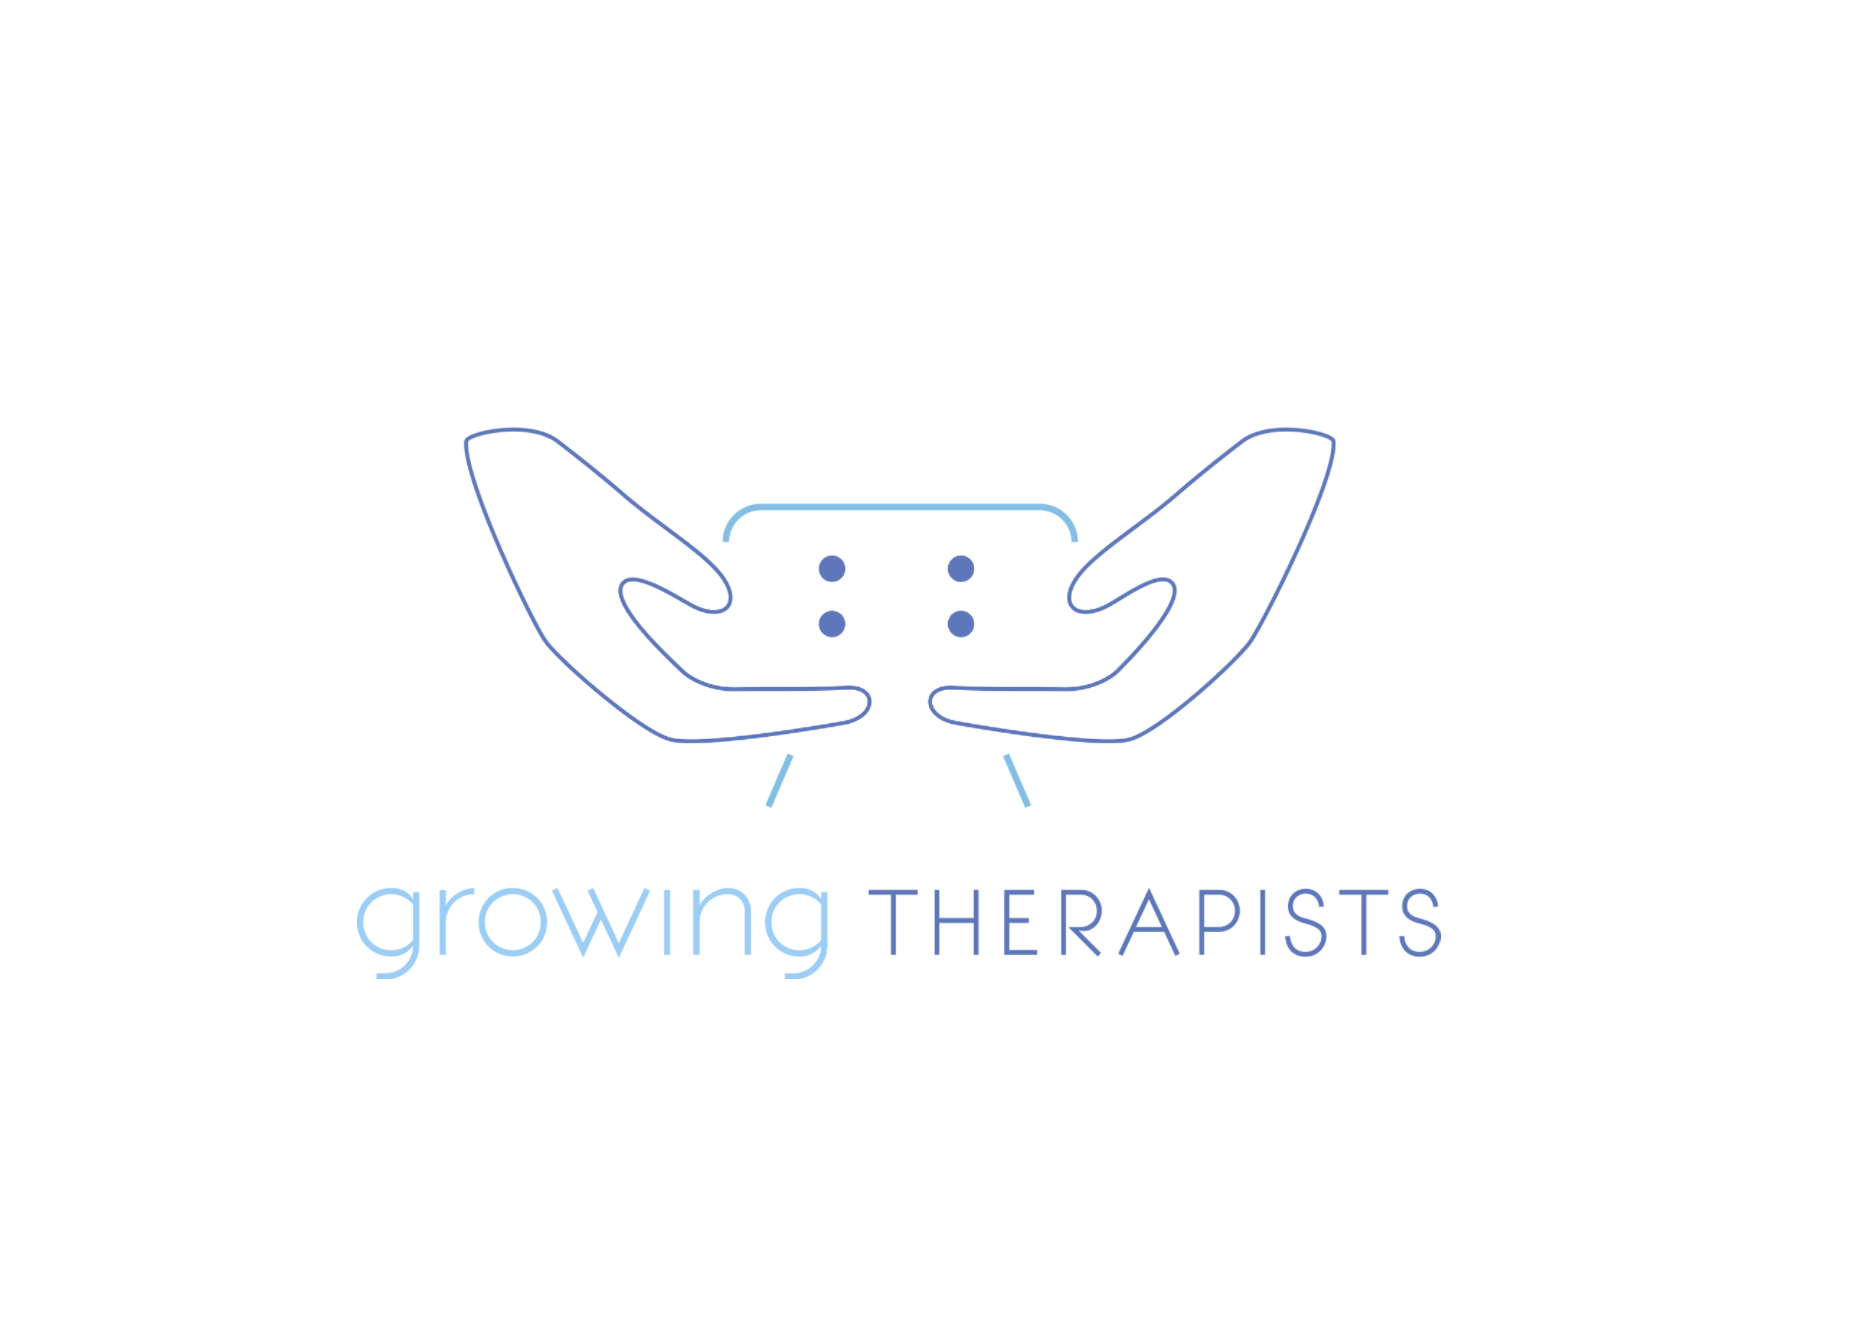 GROWING THERAPISTS LOGO   |   a private practice helping therapists brand their businesses to build their own successful private practices.